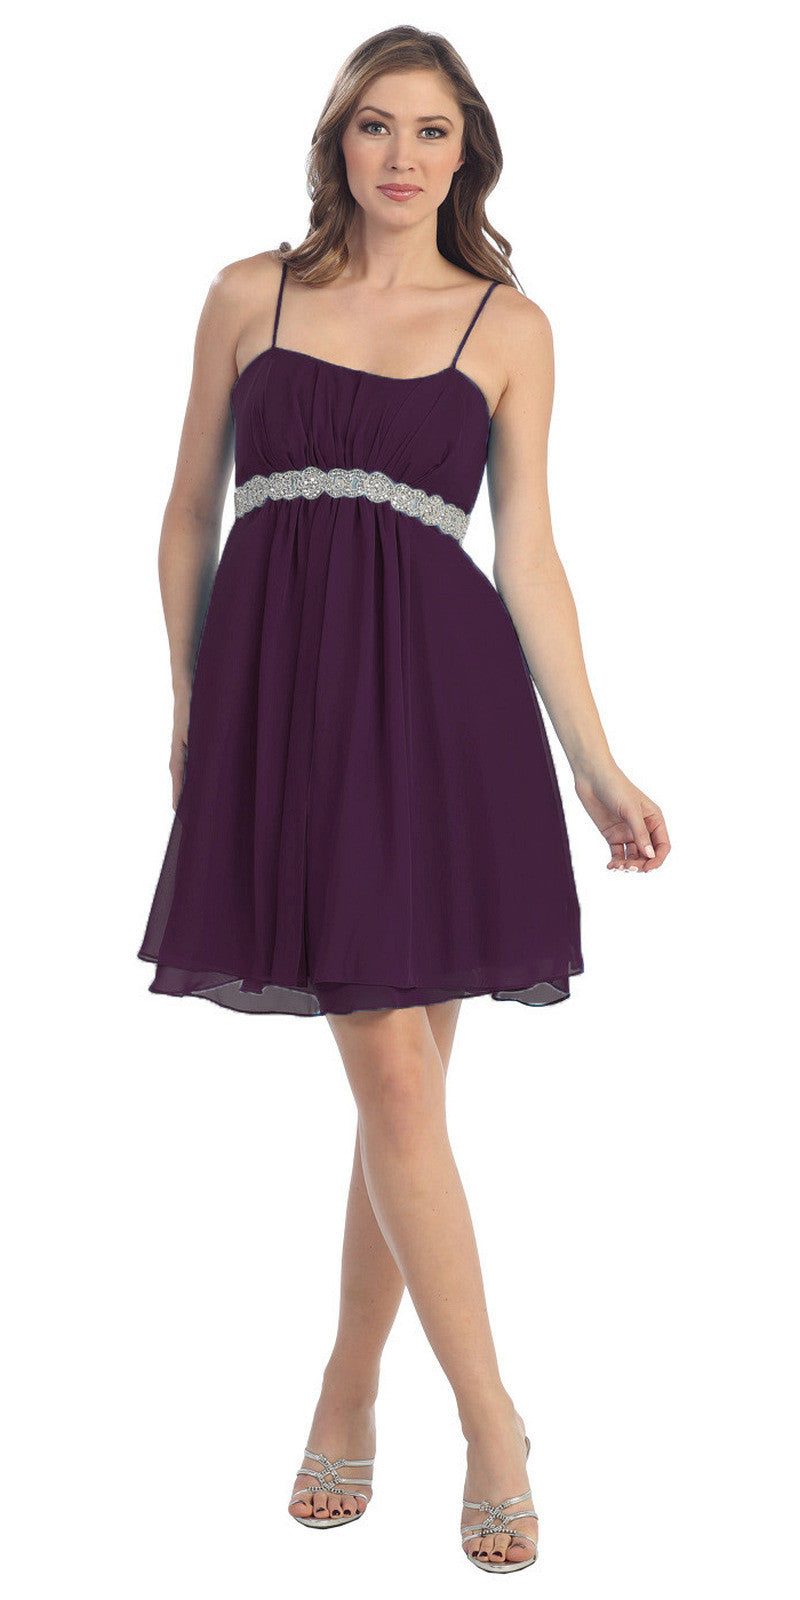 Short Knee Length Plum Chiffon Dress Empire Waist Spaghetti Straps